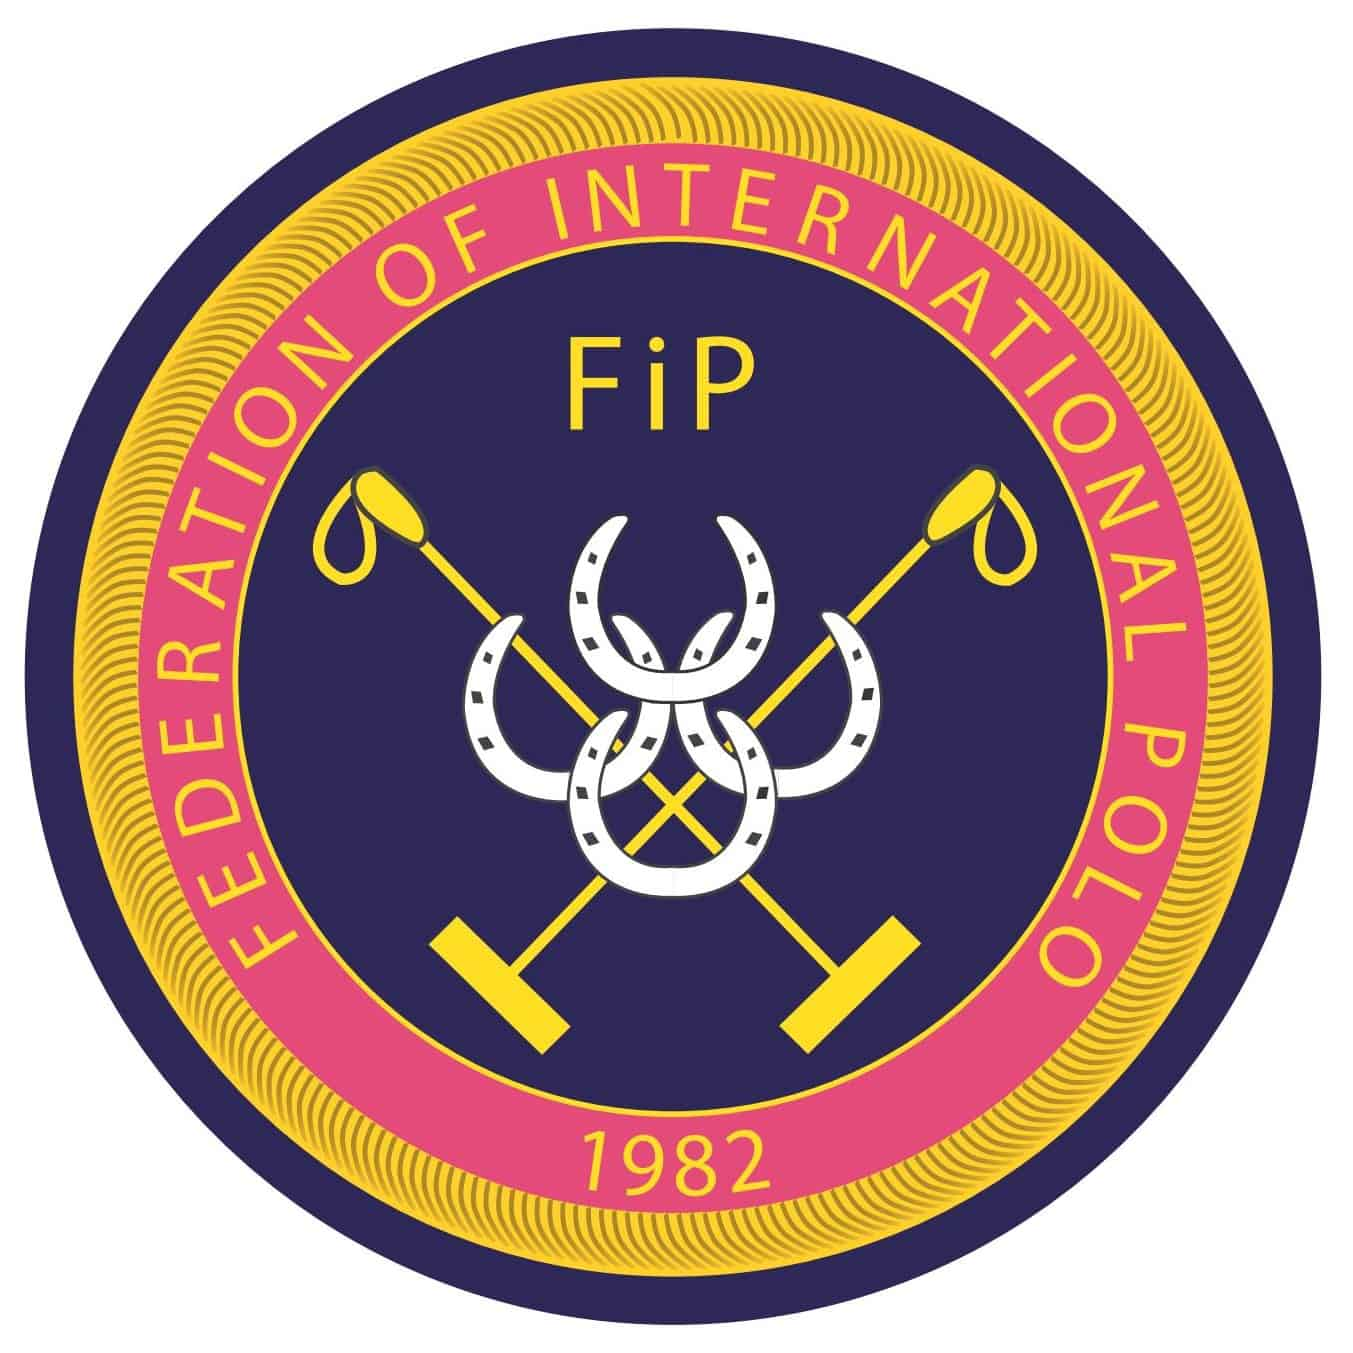 Federation of International Polo FIP logo